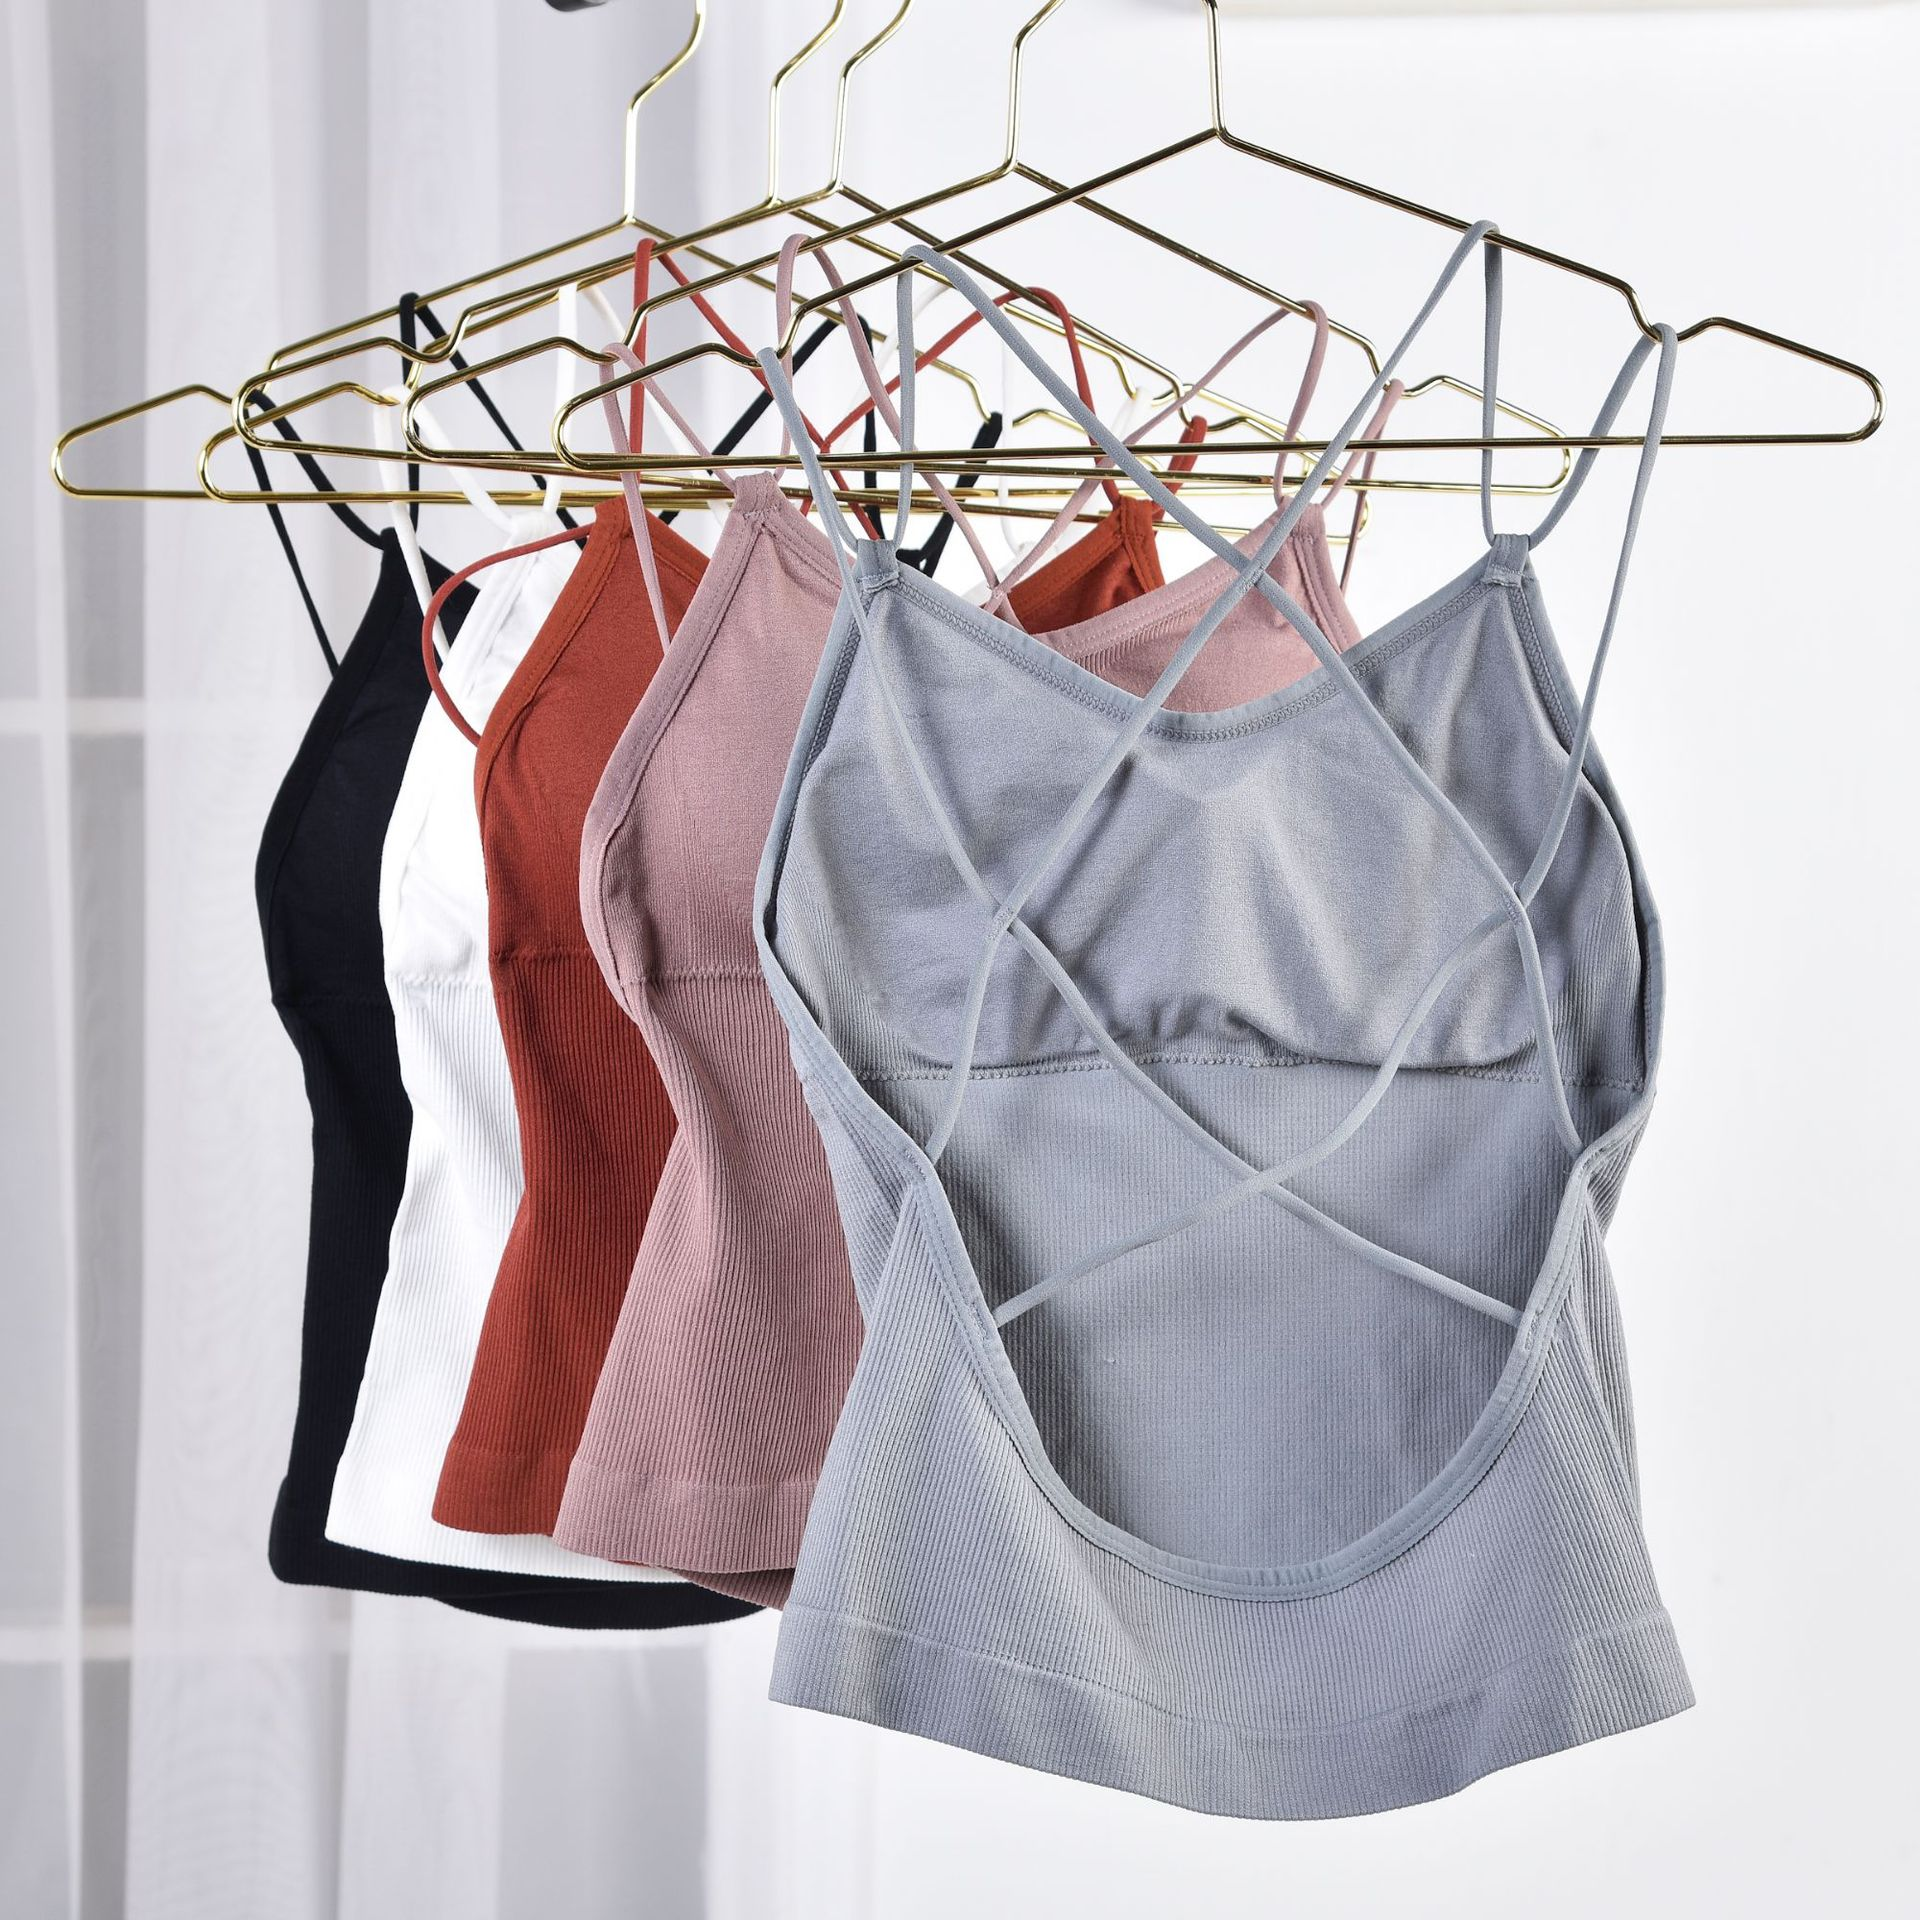 Cross Back Camis Top Sexy Tank Tops Women Cropped Camis Top Comfort Underwear Padded Top Summer Sleeveless Camisole Femme